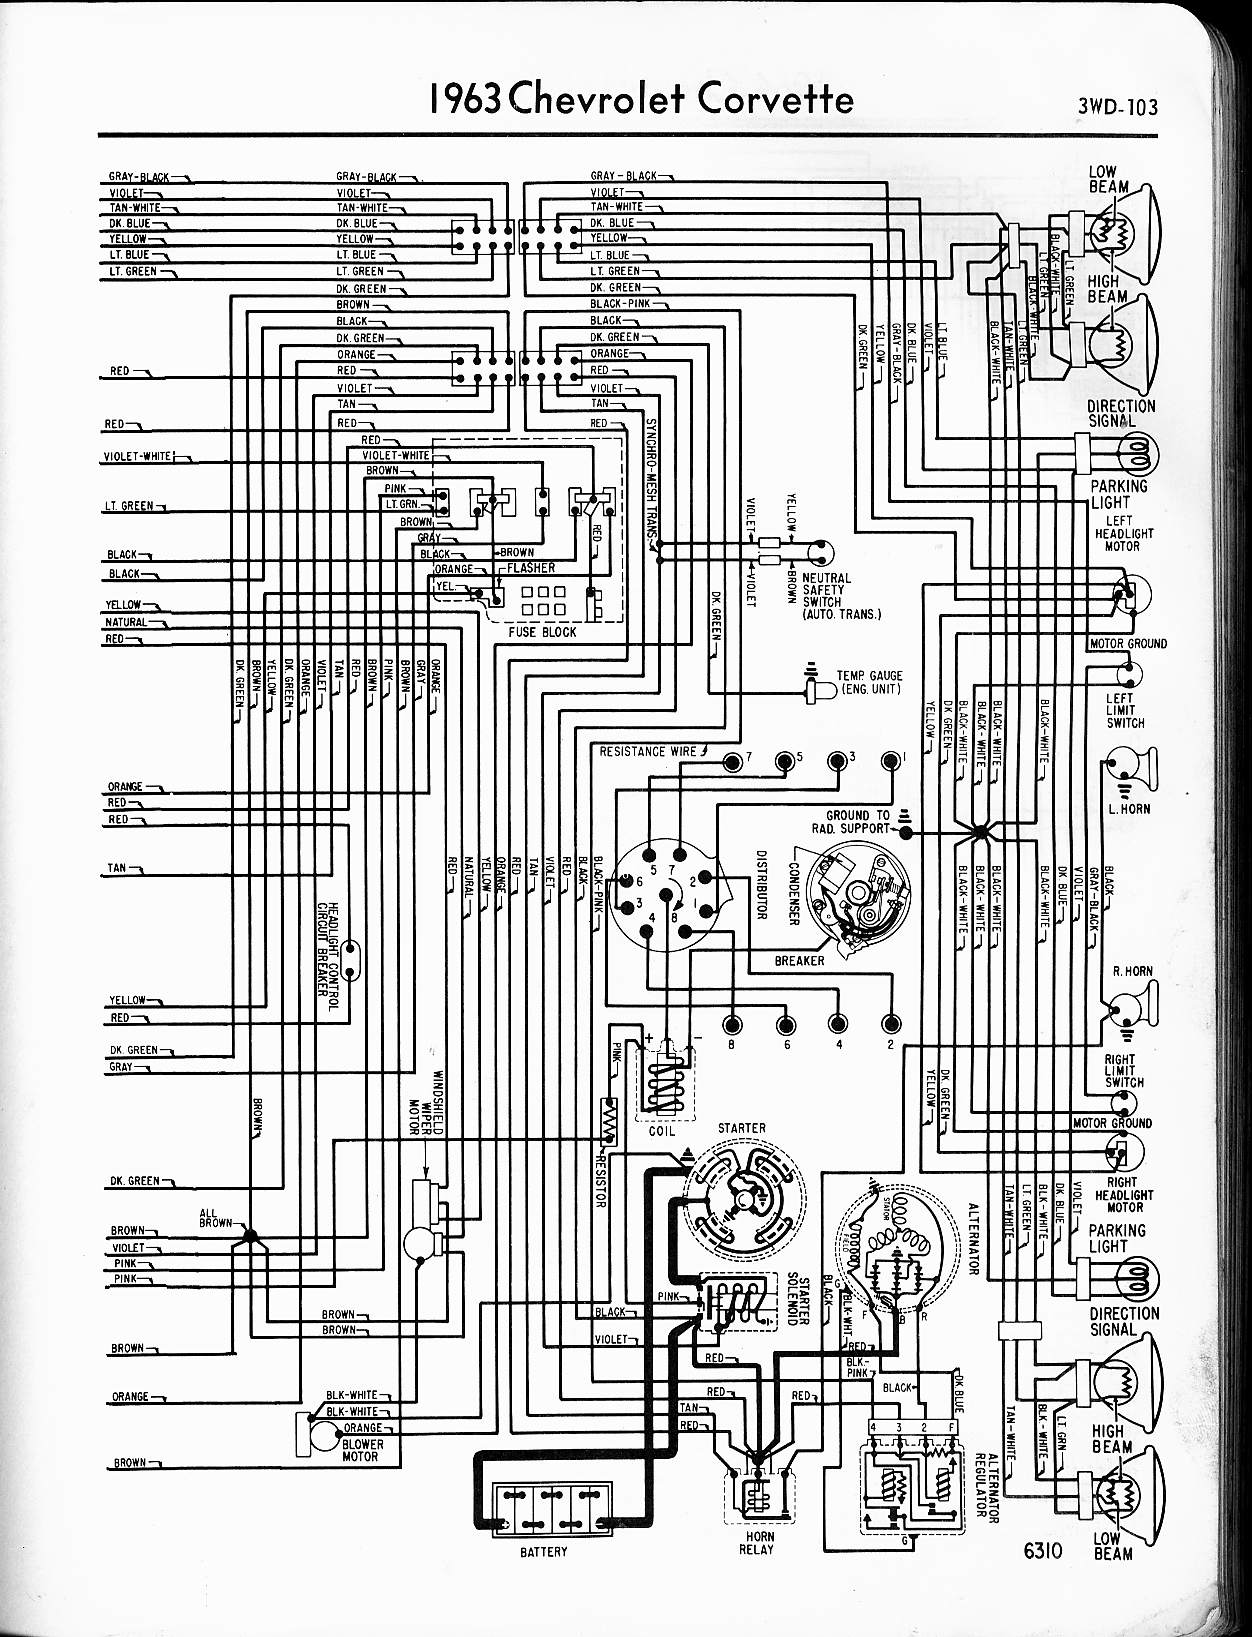 MWireChev63_3WD 103 57 65 chevy wiring diagrams 72 corvette wiring diagram at edmiracle.co